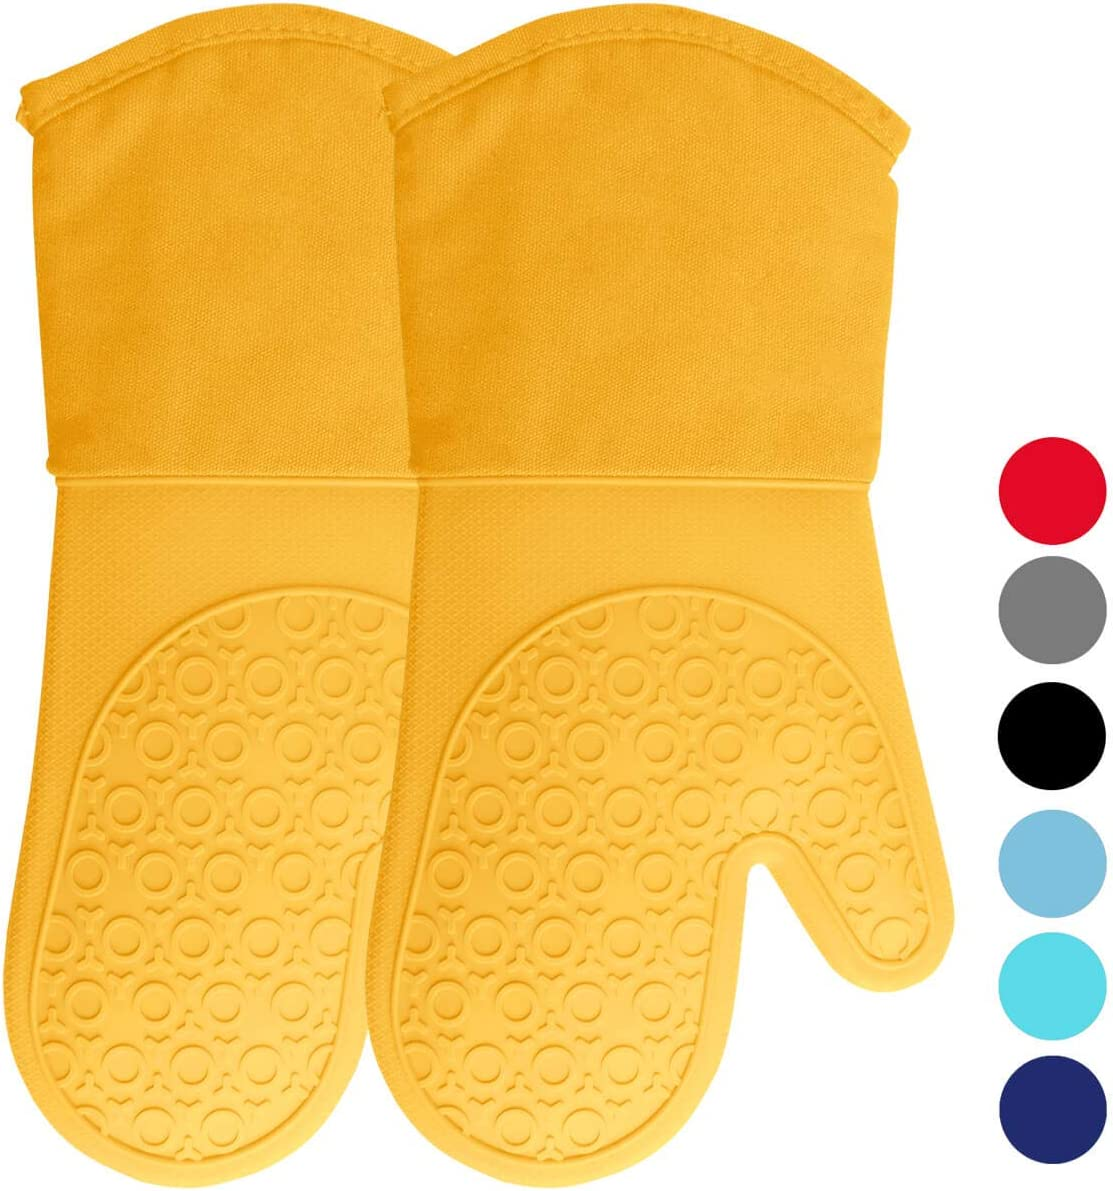 HOMWE Extra Long Professional Silicone Oven Mitt, Oven Mitts with Quilted Liner, Heat Resistant Pot Holders, Flexible Oven Gloves, 1 Pair, 13.7 Inch, Yellow